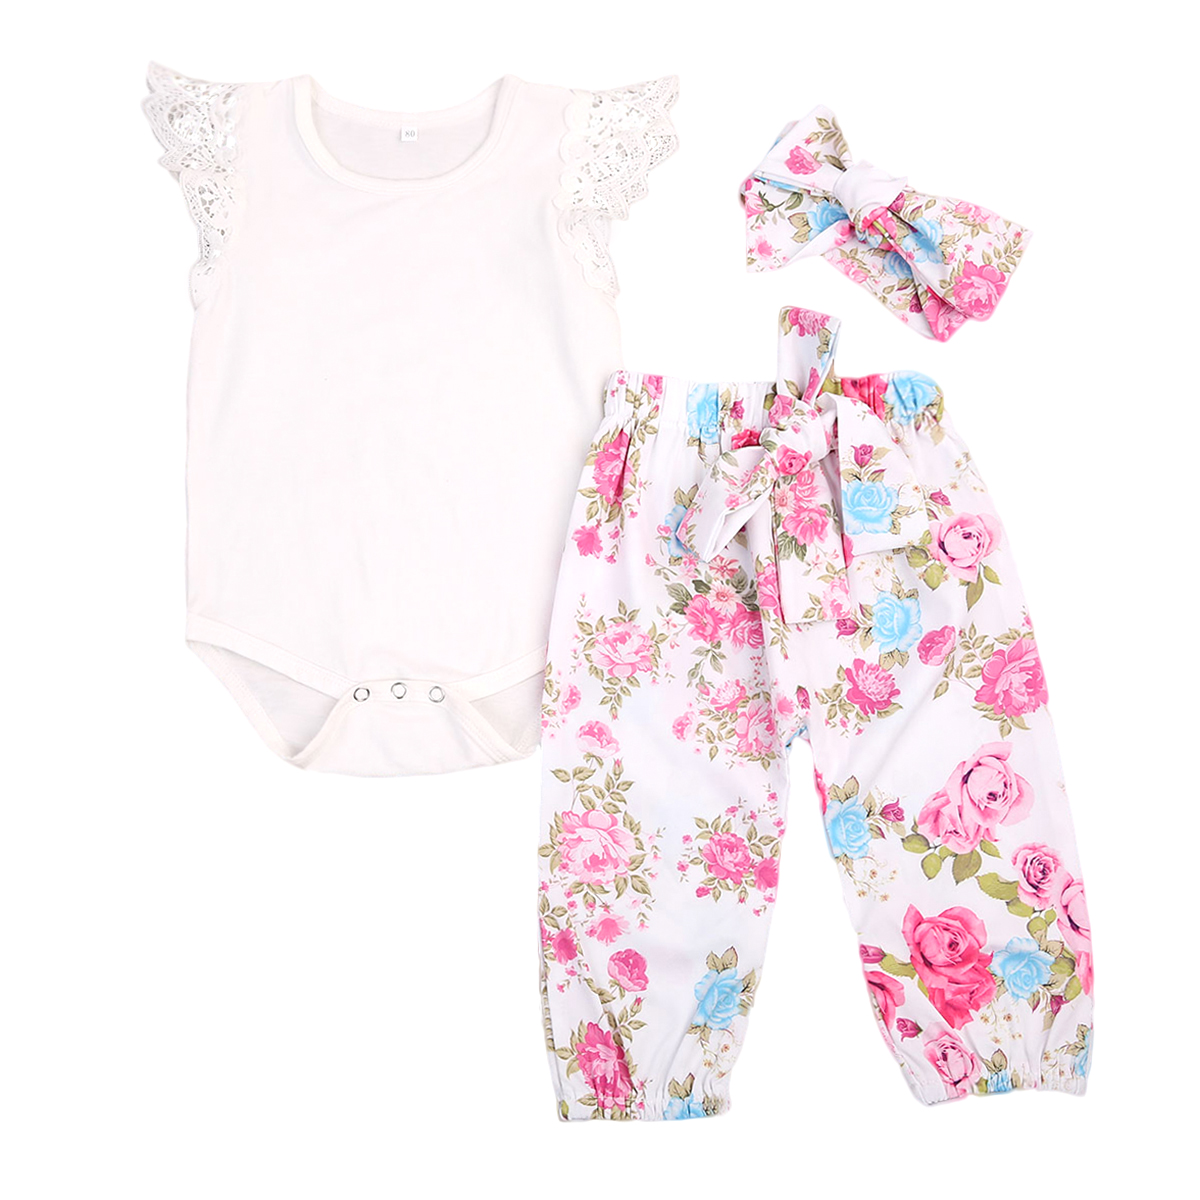 US Stock Floral Newborn Baby Girls Lace Romper Pants Headband Outfit Set Clothes Infant Toddler Girl Brief Clothing Set Playsuit fashion 2pcs set newborn baby girls jumpsuit toddler girls flower pattern outfit clothes romper bodysuit pants